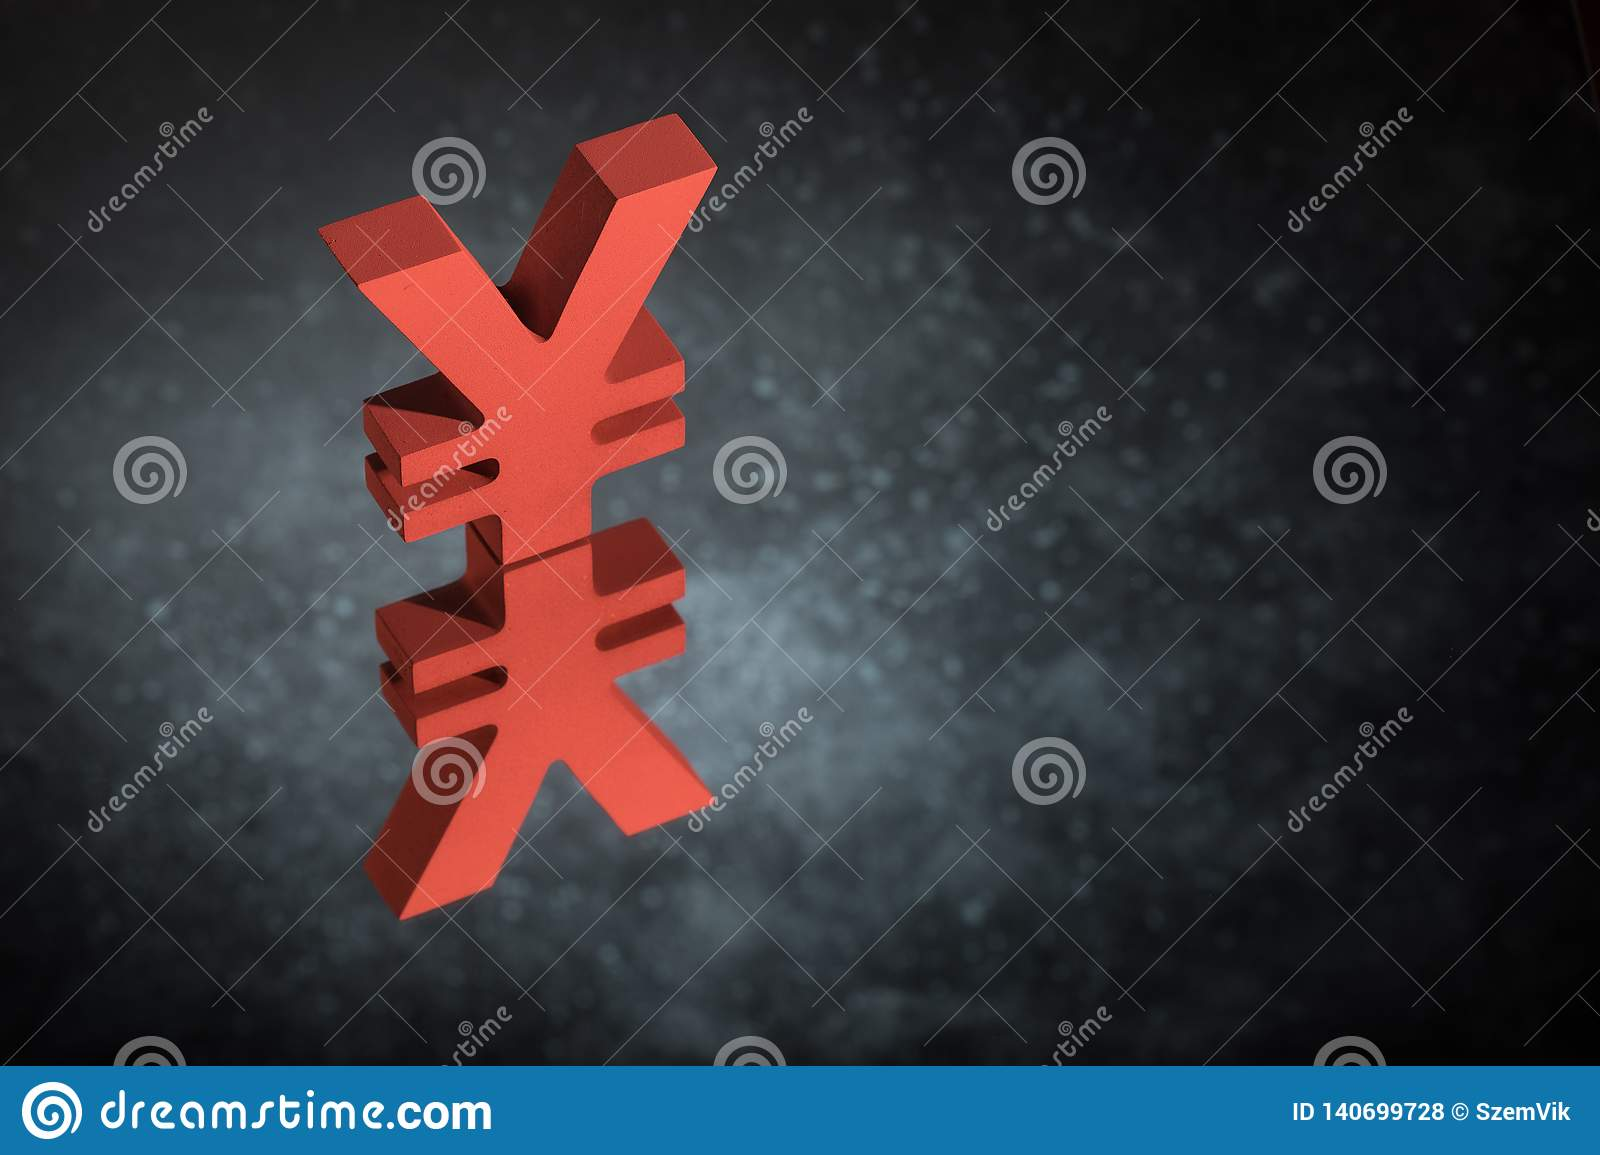 Red Japanese of Chinese Currency Symbol or Sign With Mirror Reflection on Dark Dusty Background